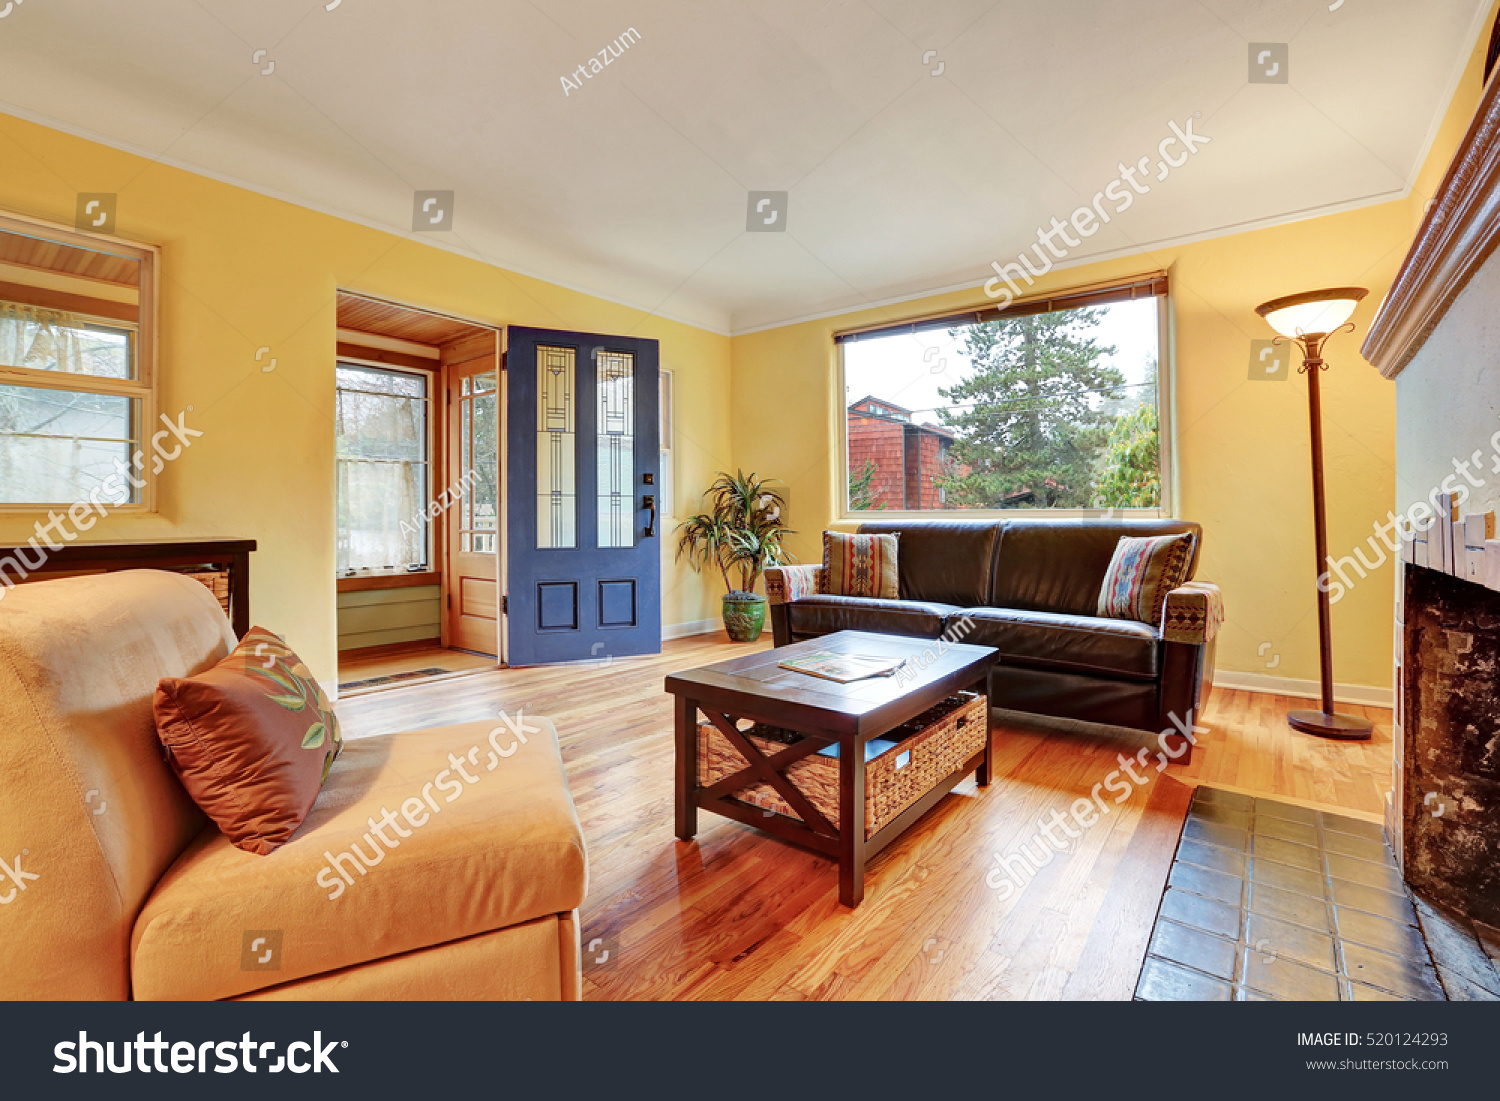 Cozy Living Room With Fireplace. Cozy Living Room Interior With Warm Yellow  Walls , Fireplace